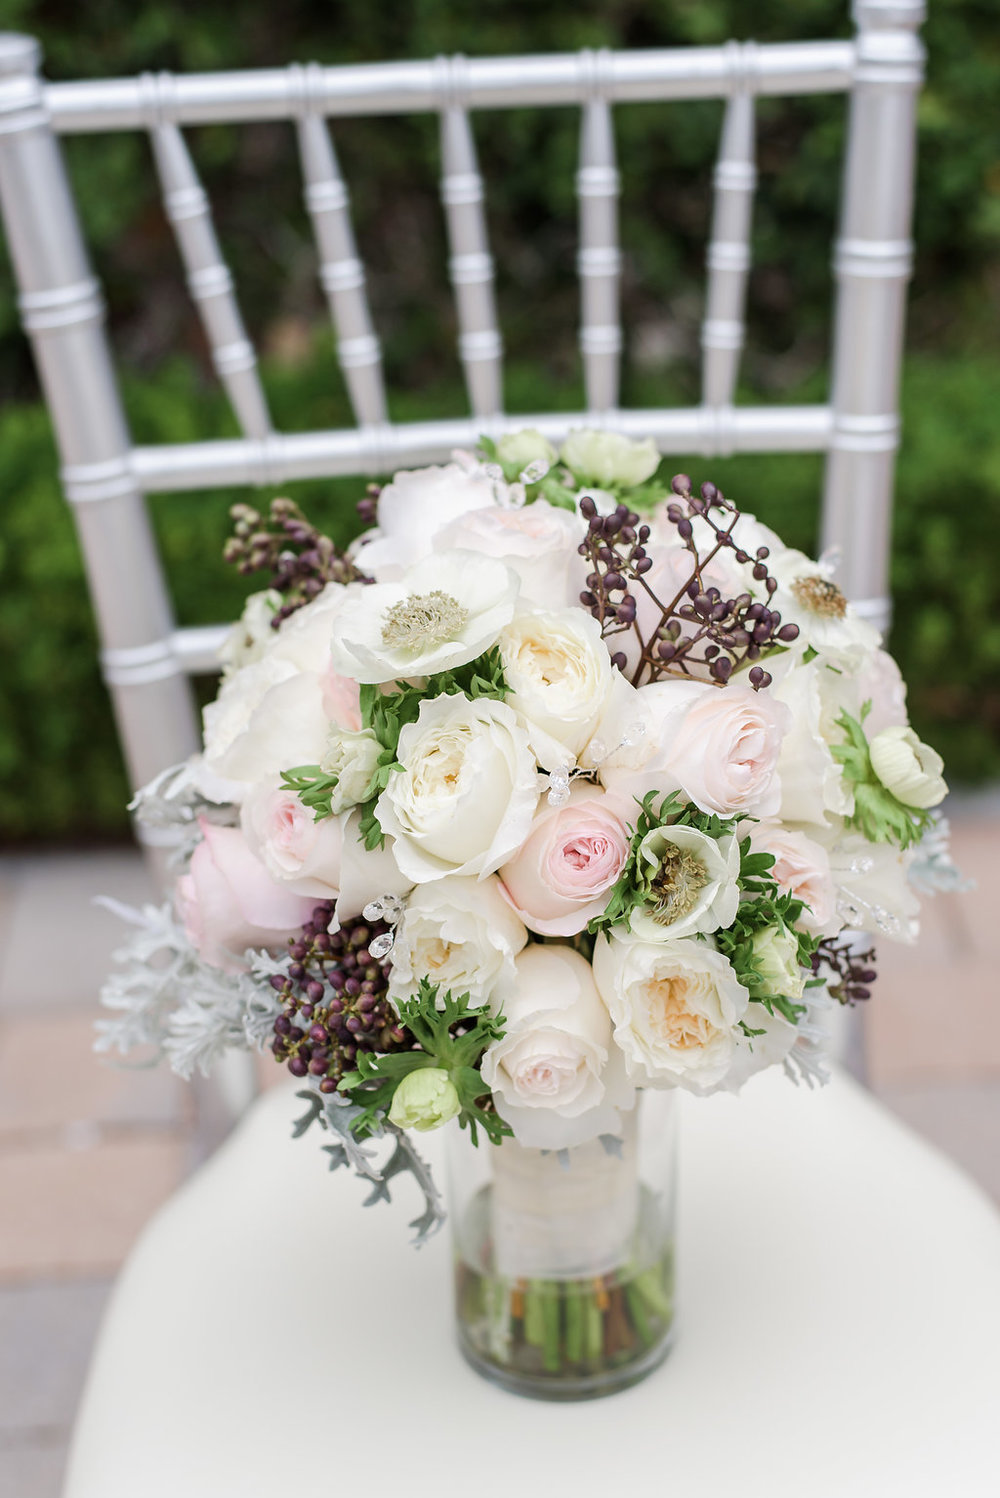 The bride's bouquet boasted garden roses, anemones, dusty miller, and berries.